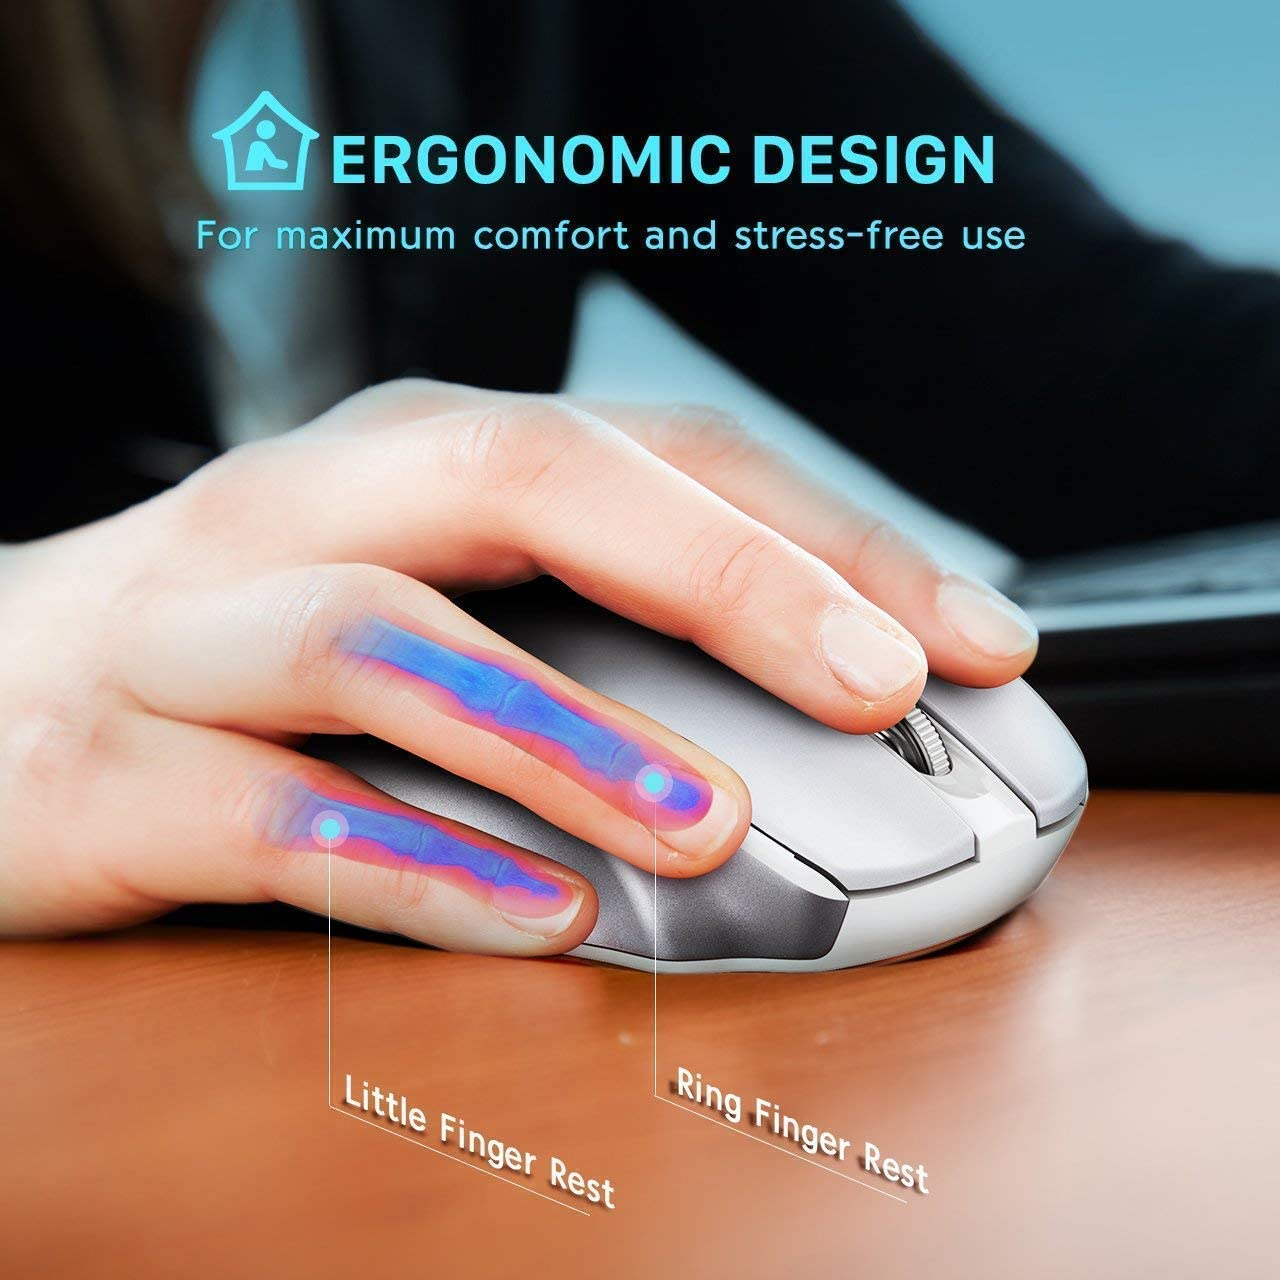 2.4GHz Wireless Connection for PC Laptop Windows 7//8//10 Ultra-Slim USB Keyboard Noiseless Mouse Set with Water-Dropping Keycaps Mac Vista 12 Shortcuts VicTsing Wireless Keyboard and Mouse Combo